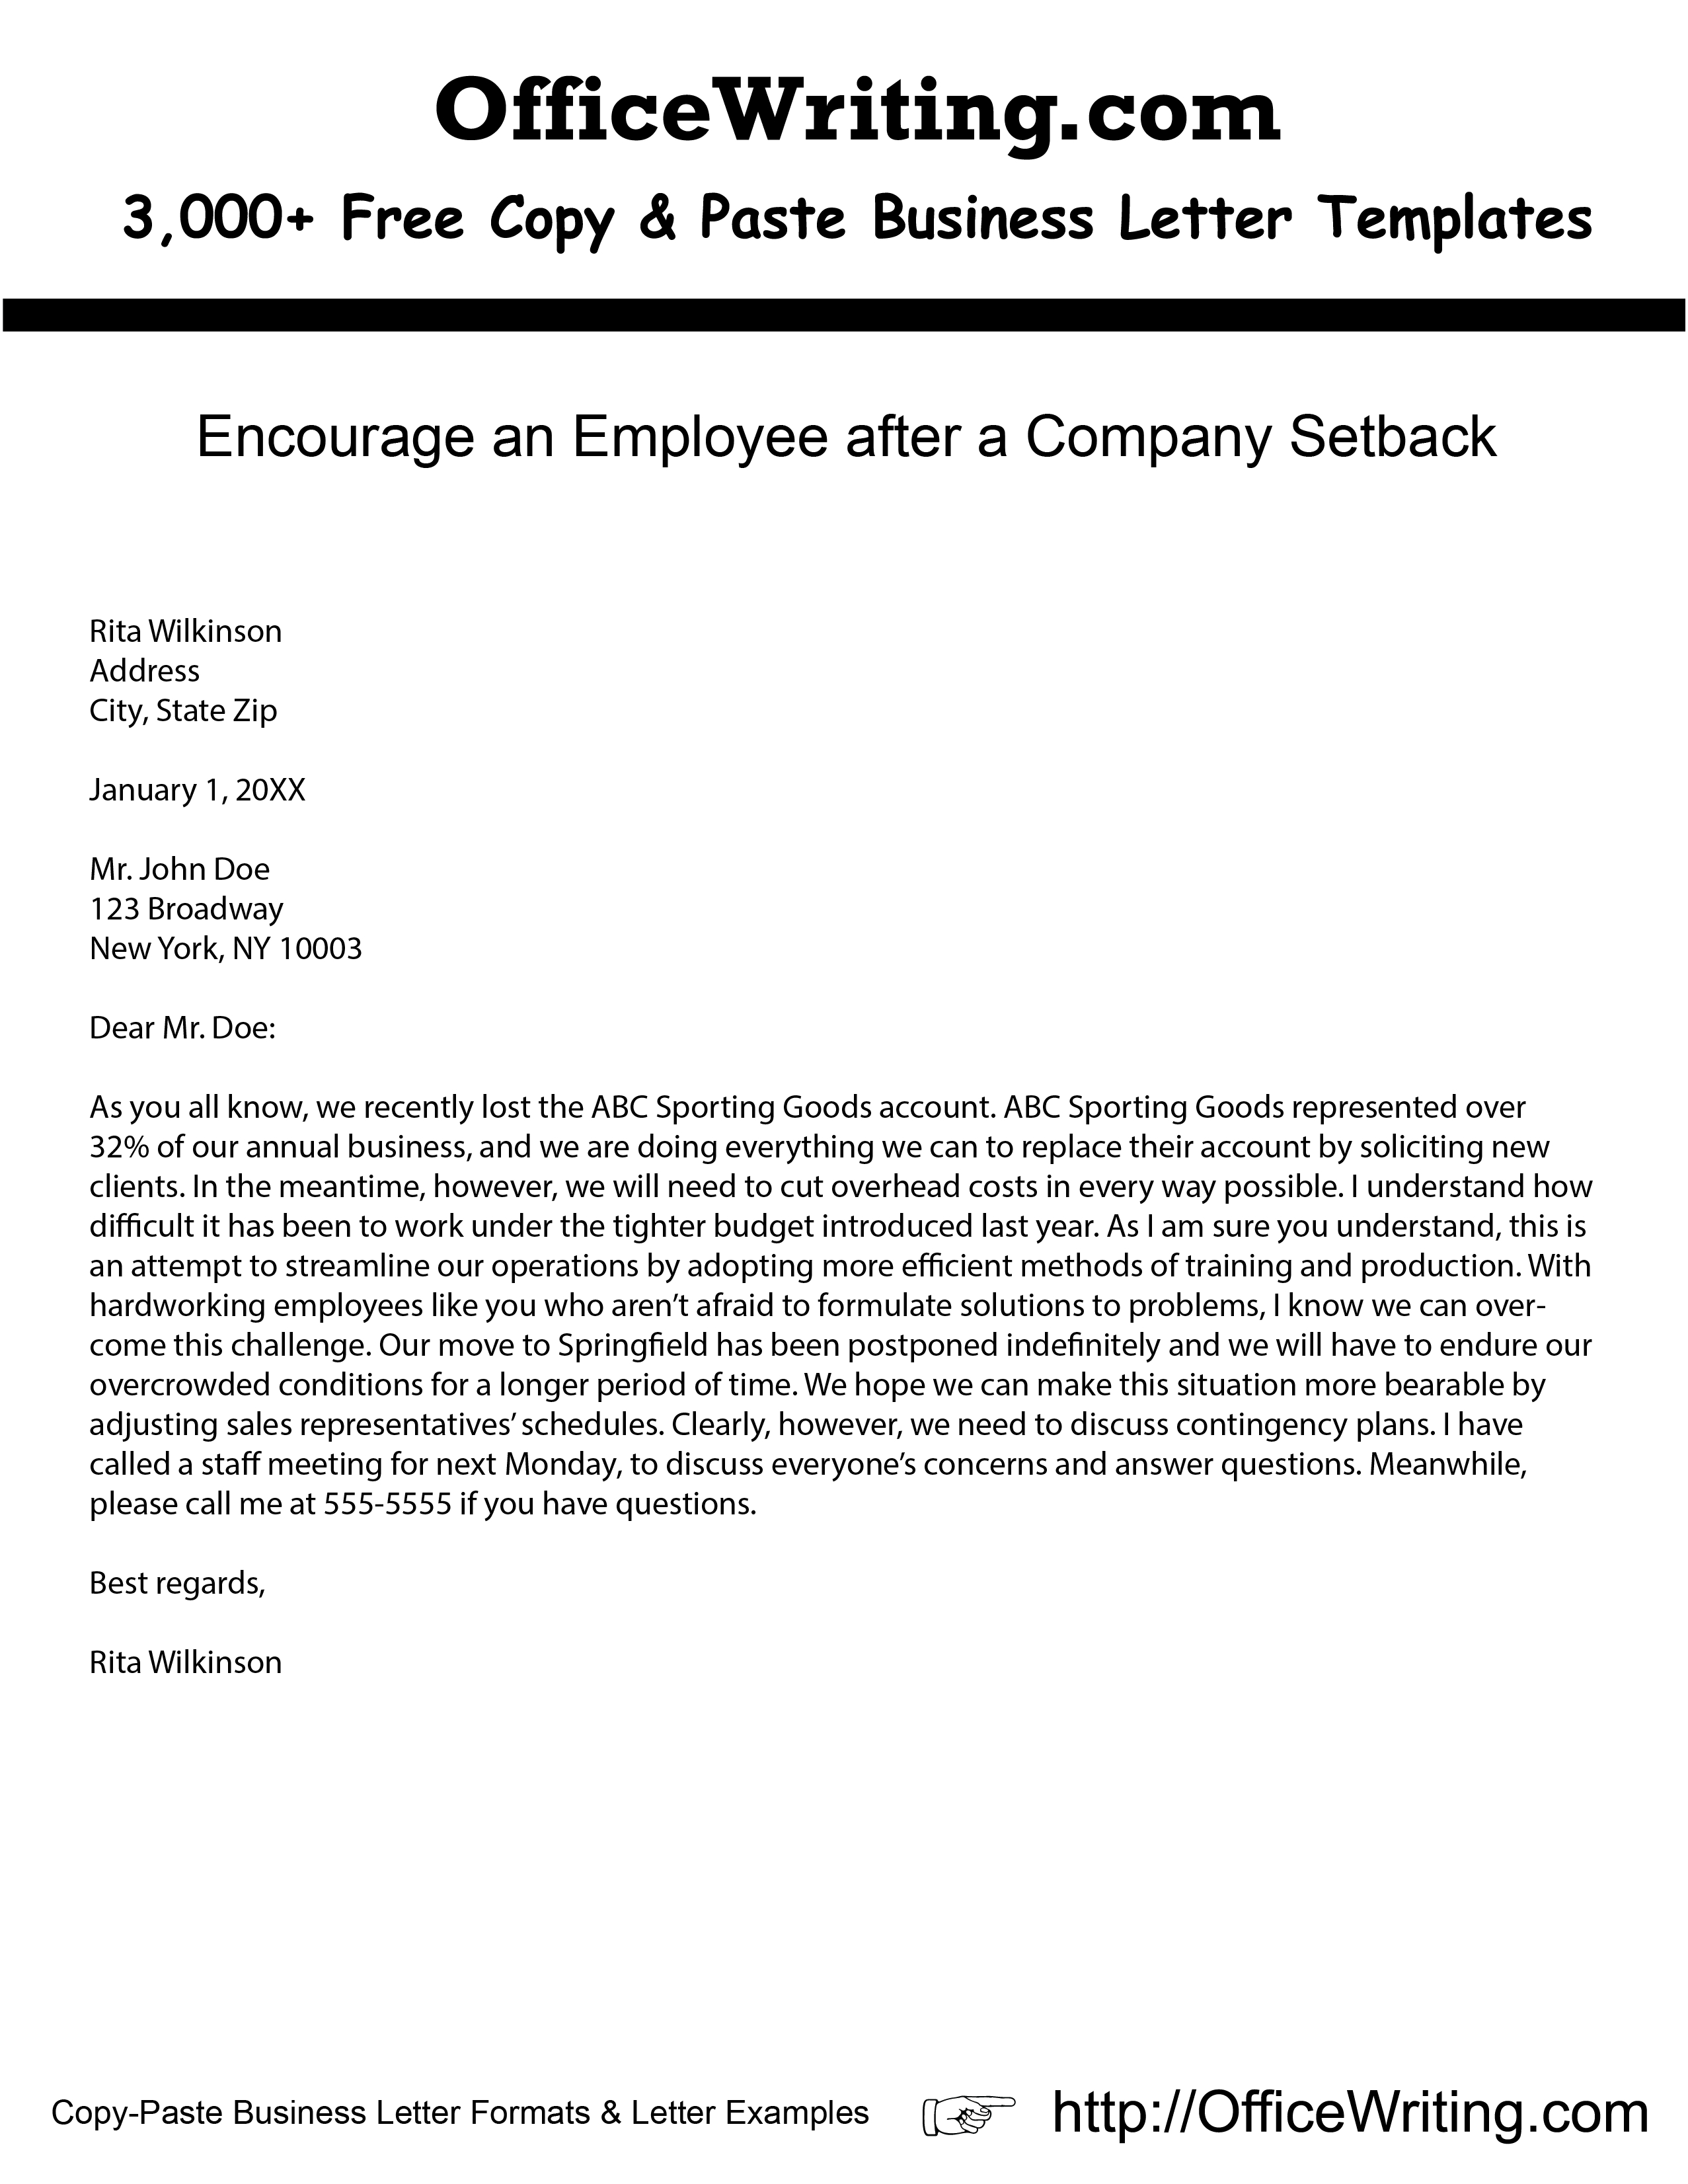 Company Letter Template - Encourage An Employee after A Pany Setback Ficewriting